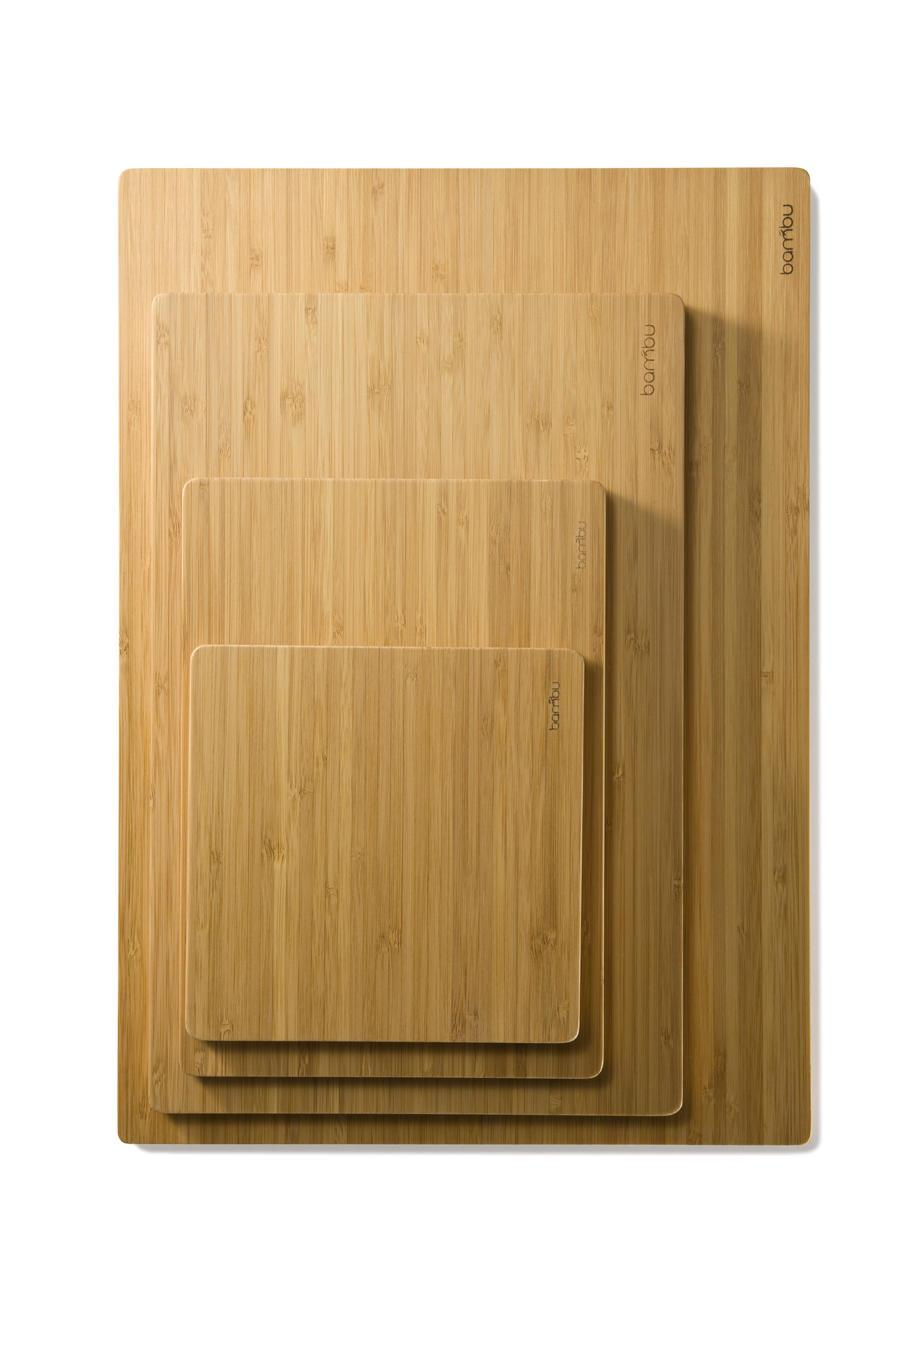 Bambu Undercut Serving & Cutting Board